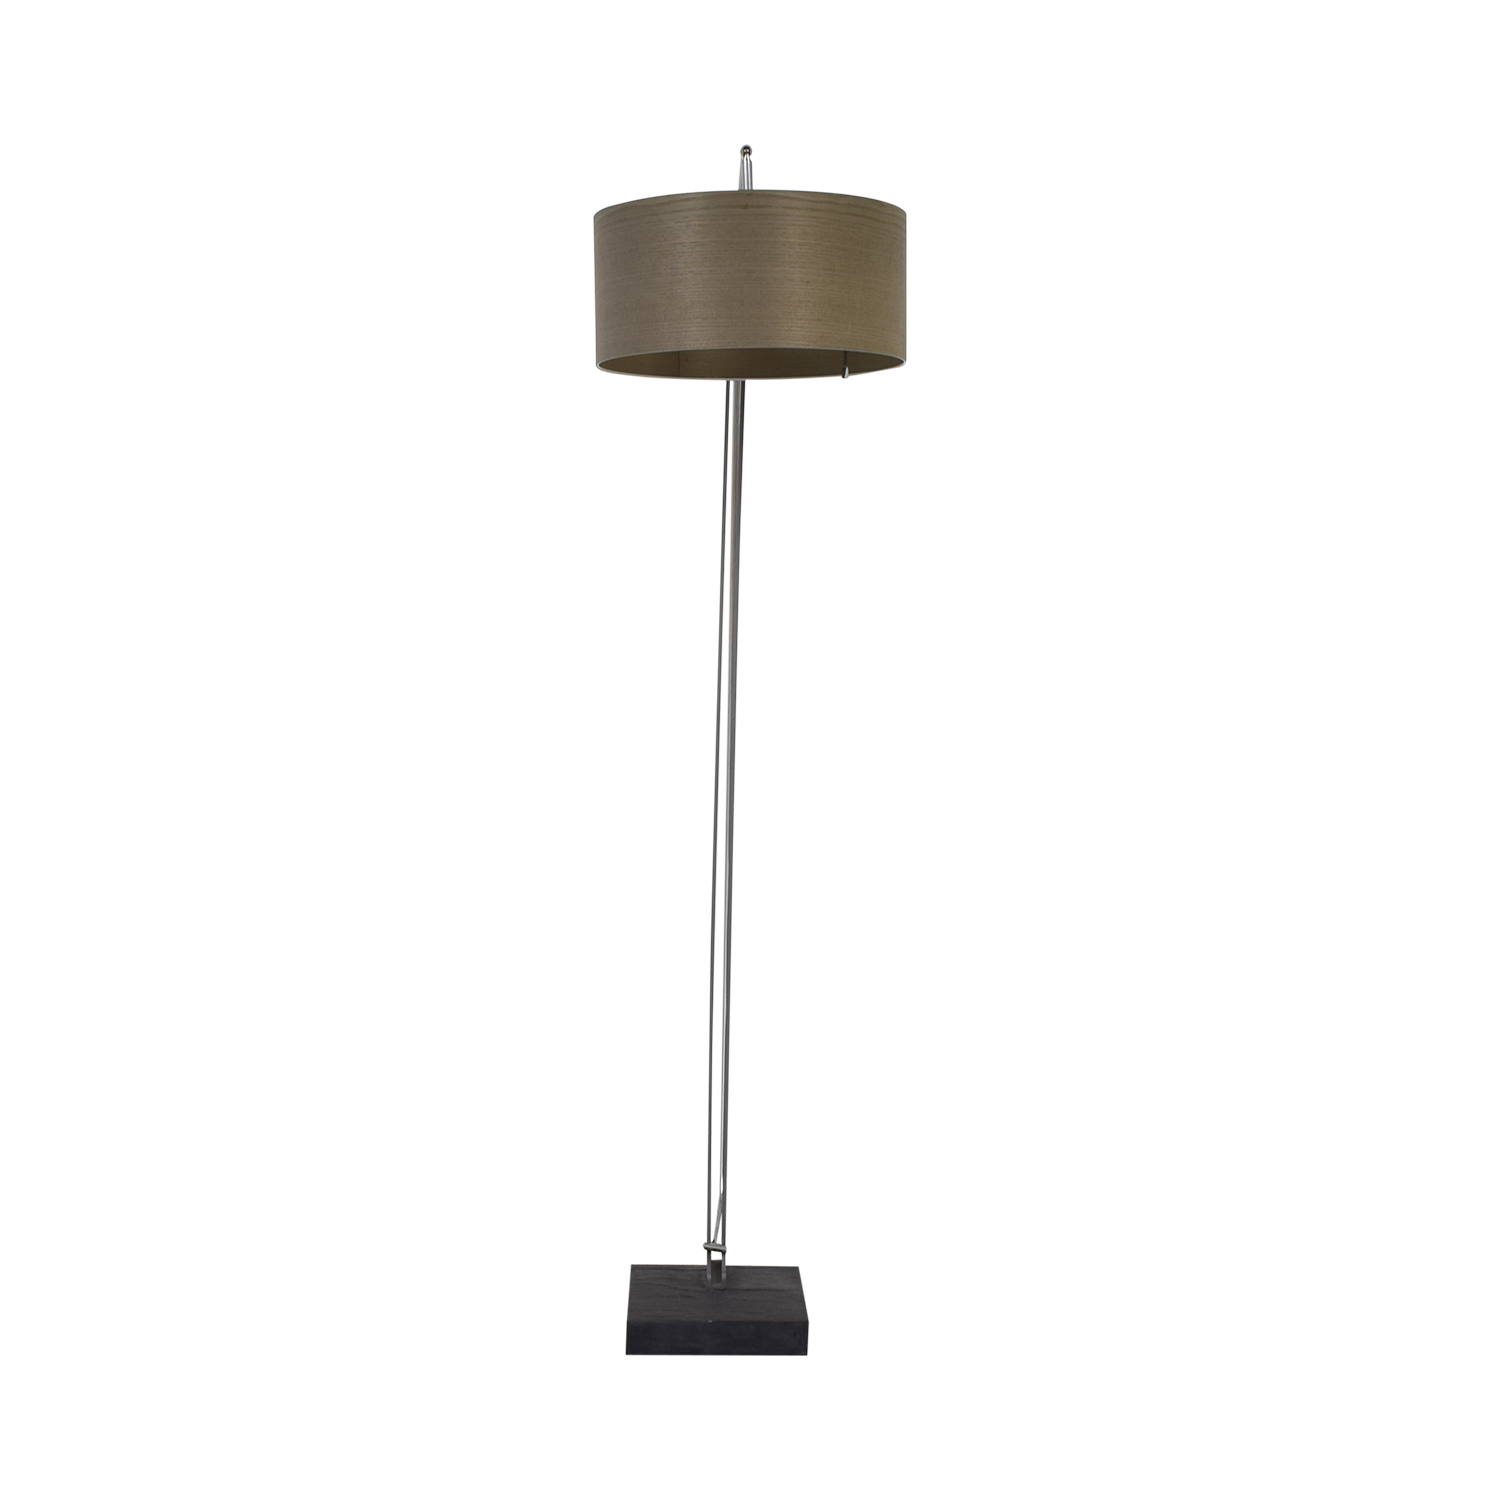 Ligne Roset Floor Lamp / Decor